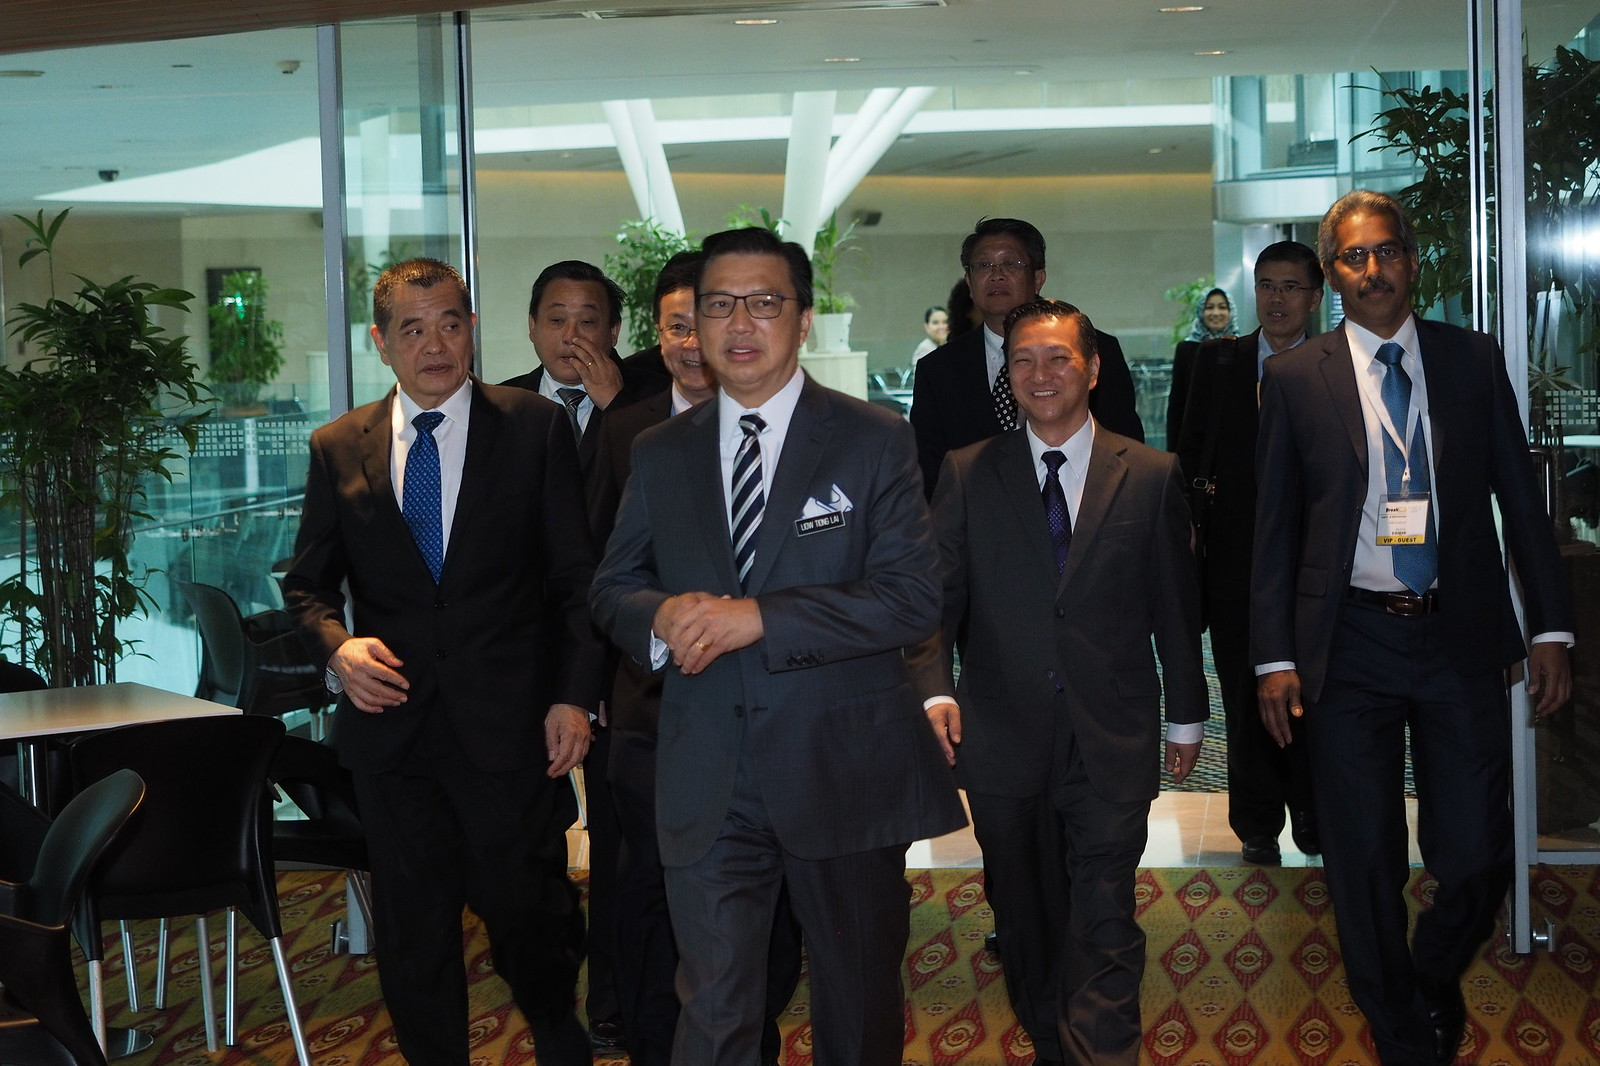 Breakbulk Southeast Asia 2017: Malaysia's Minister of Transport Opens China Malaysia Port Alliance Annual Meeting